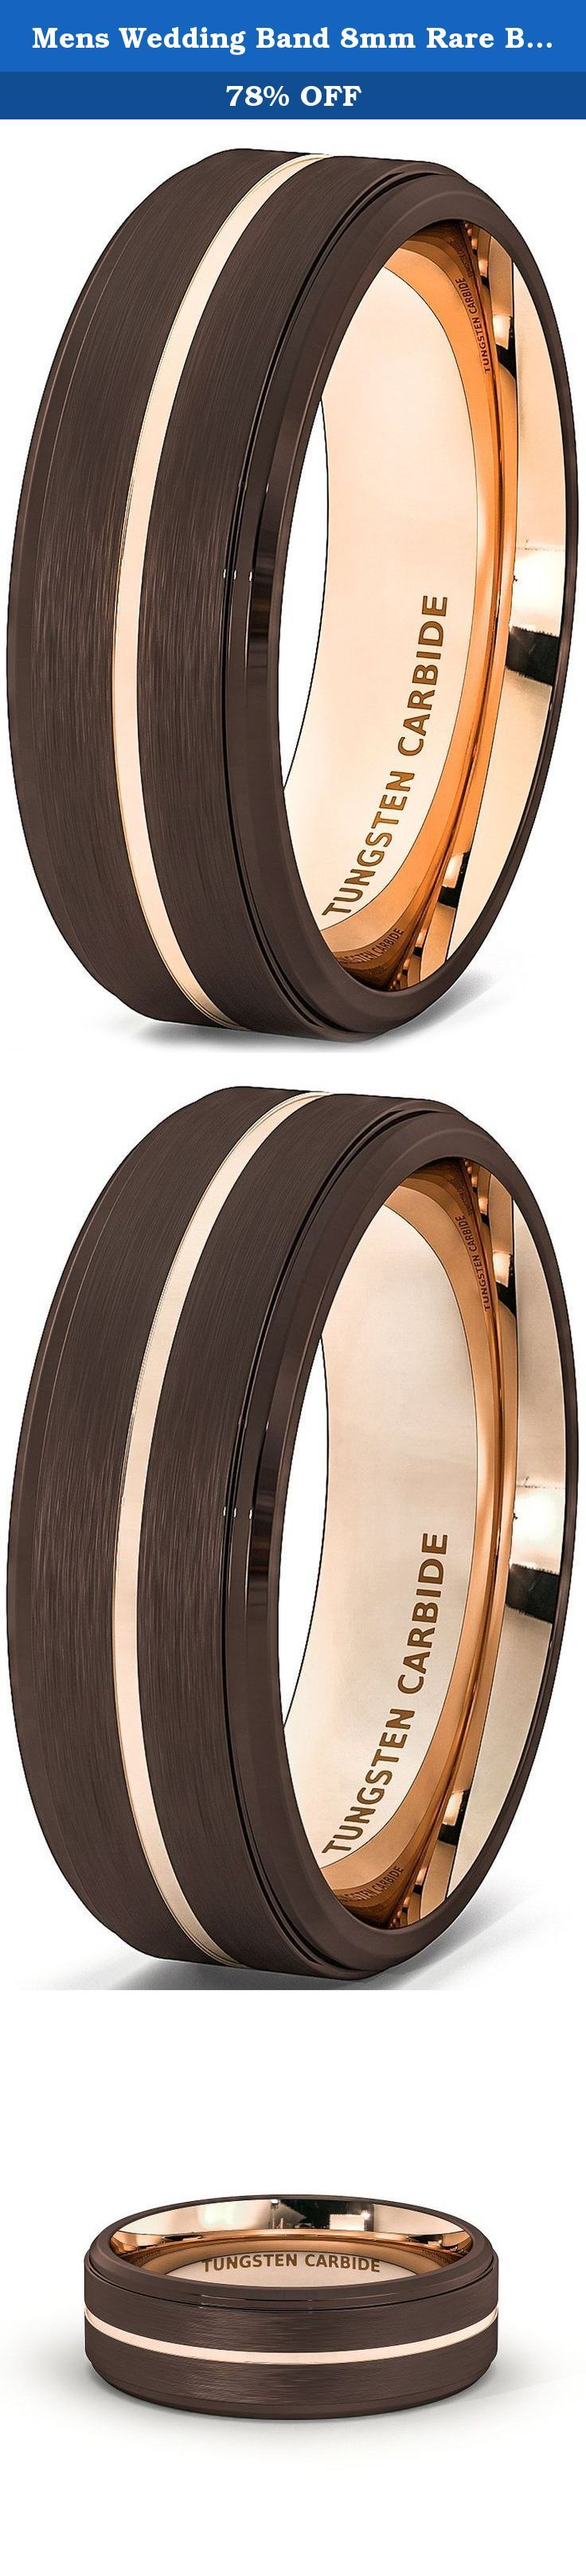 Mens Wedding Band 8mm Rare Brown Brushed Tungsten Ring Thin Rose Gold Groove Step Edge Comfort Fit (8). Width: 8mm Fit: Comfort Fit Thickness: 2.3mm, Weight: Approximately 12-17g depend on sizes, Surface: Brushed Edge: Step Edge, Color: Brown and Rose Gold.